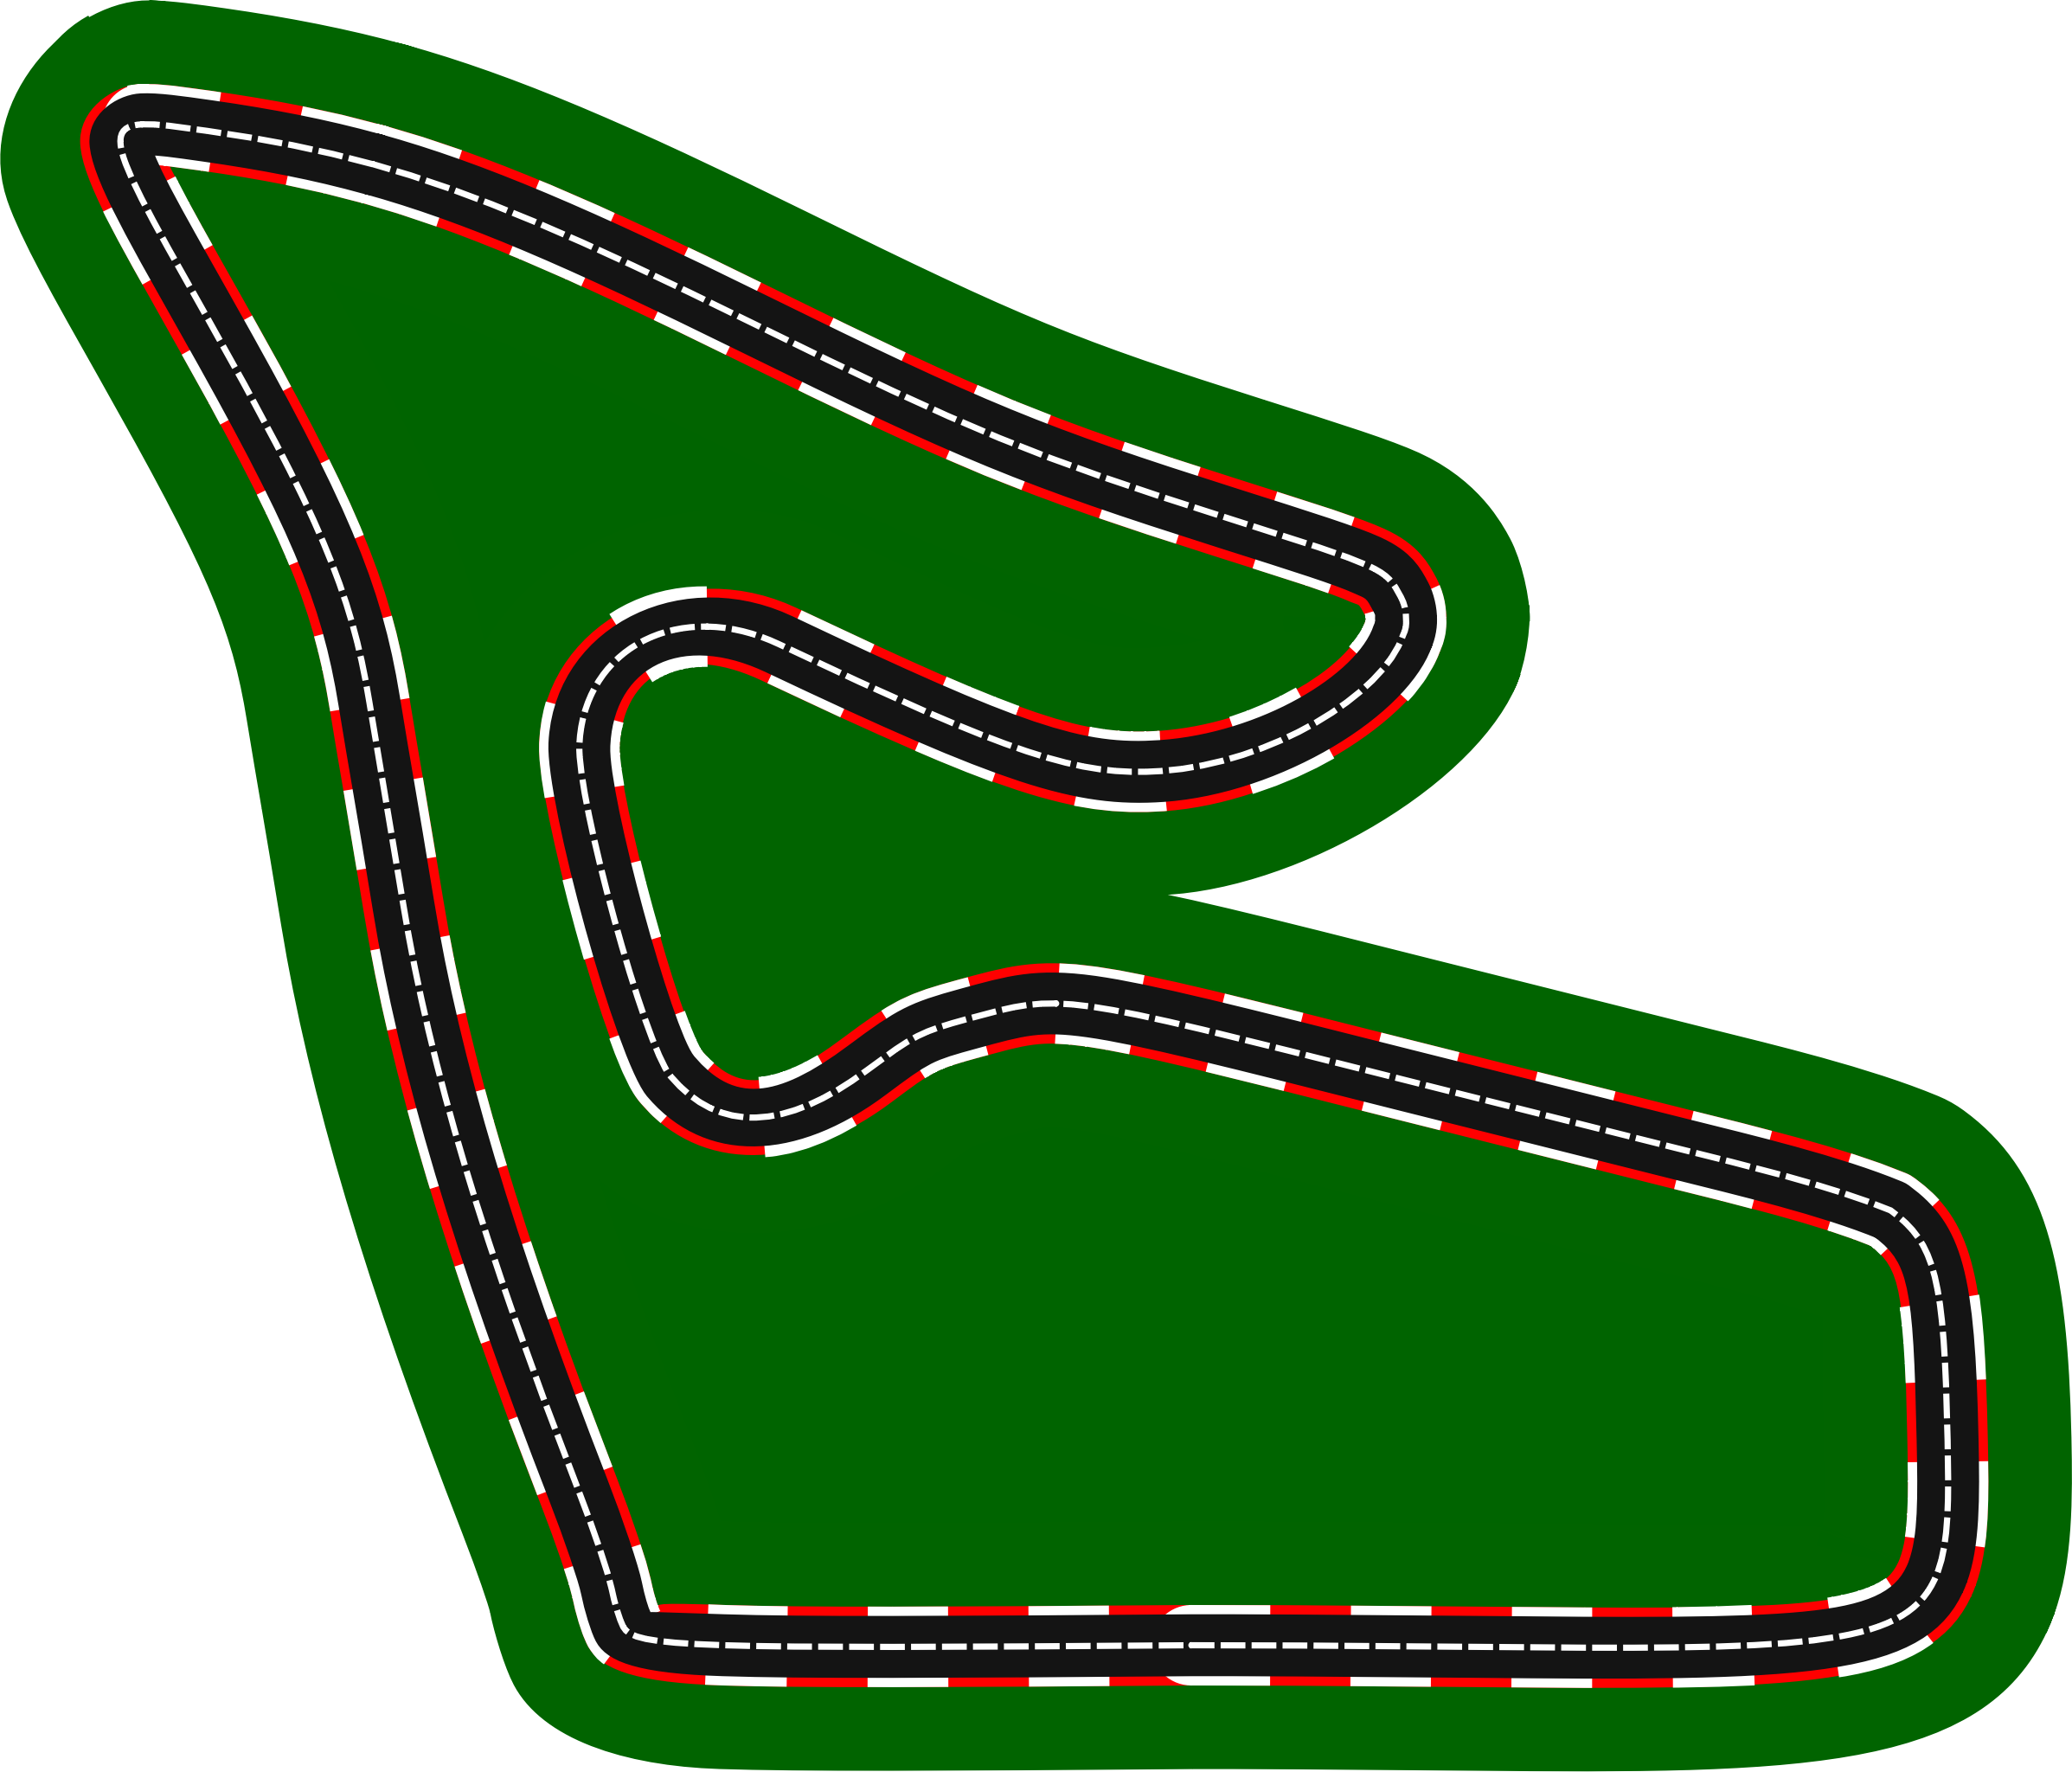 Car track clipart clip transparent library Clipart - F1 circuits 2014-2018 - Red Bull Ring clip transparent library